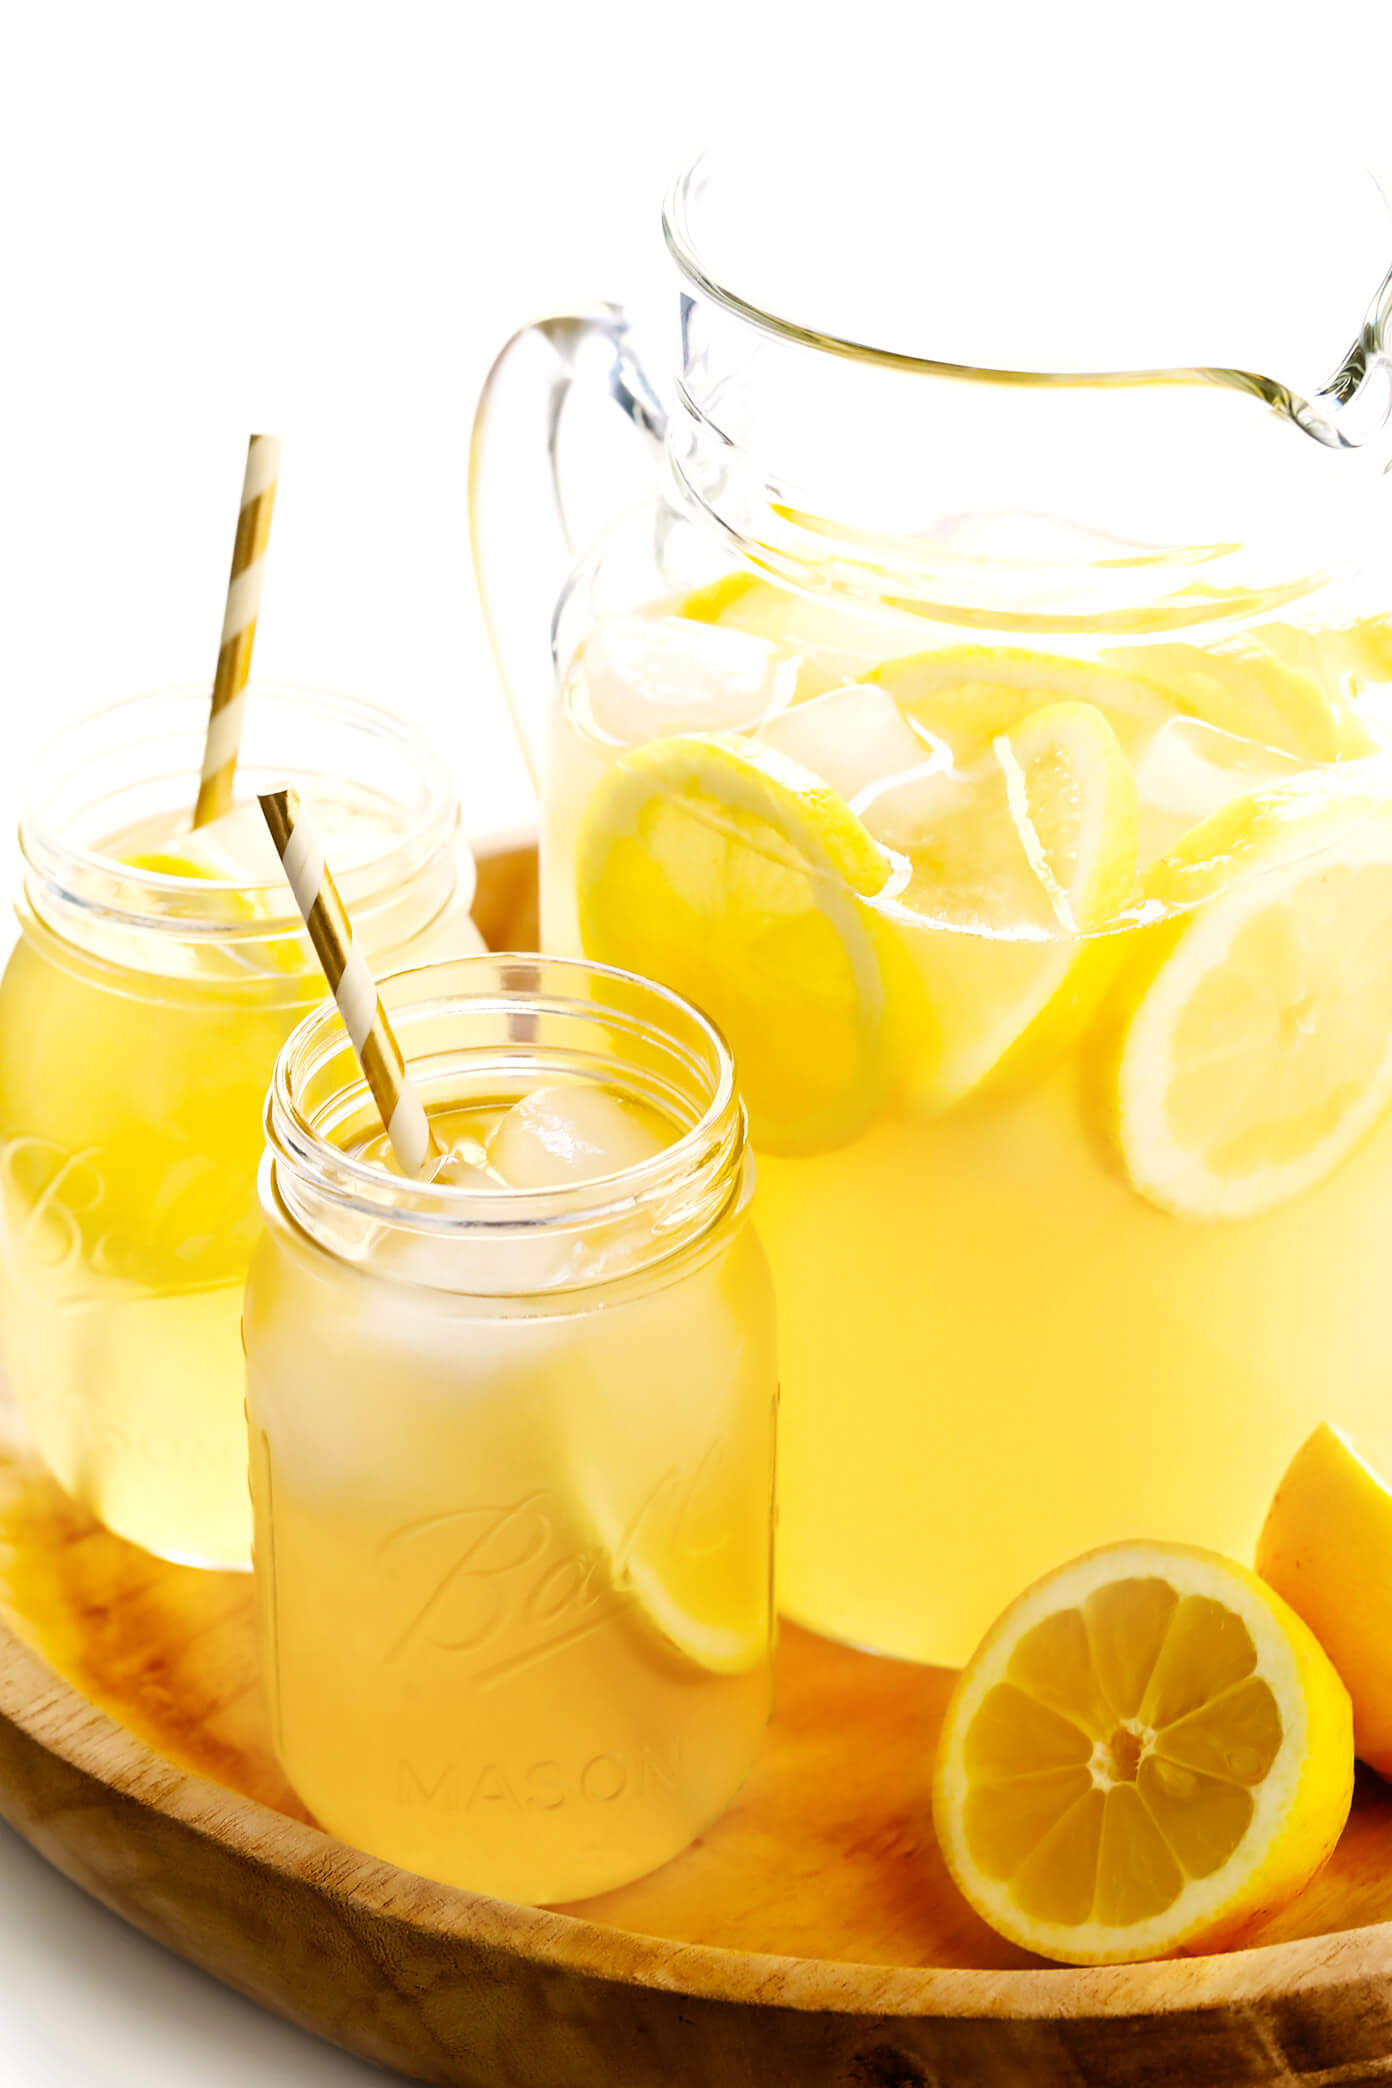 The BEST 3-ingredient homemade lemonade recipe -- naturally sweetened with maple syrup or honey, and easy to make in just 5 minutes! | gimmesomeoven.com #lemonade #drink #summer #juice